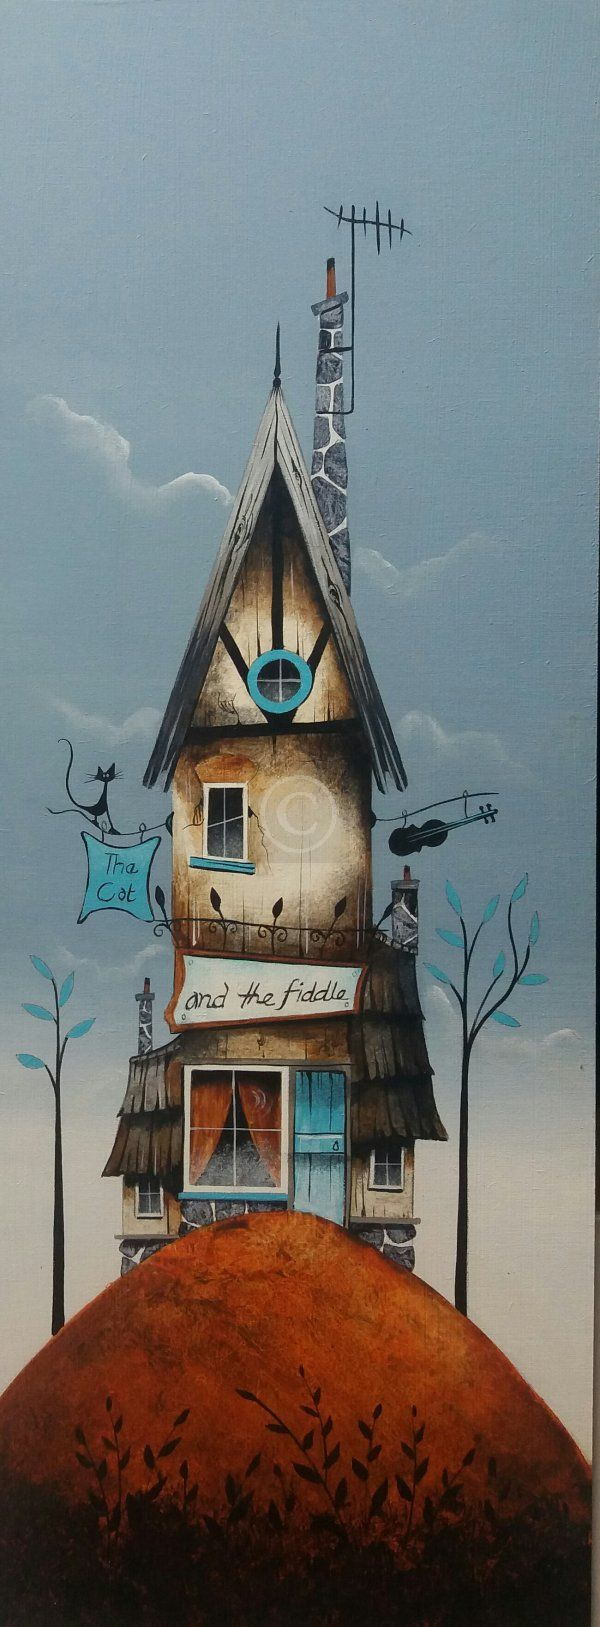 The Cat and the Fiddle by Gary Walton. He can produce some really interesting work. His website is a bit sparse so if you want to see more try google searching him